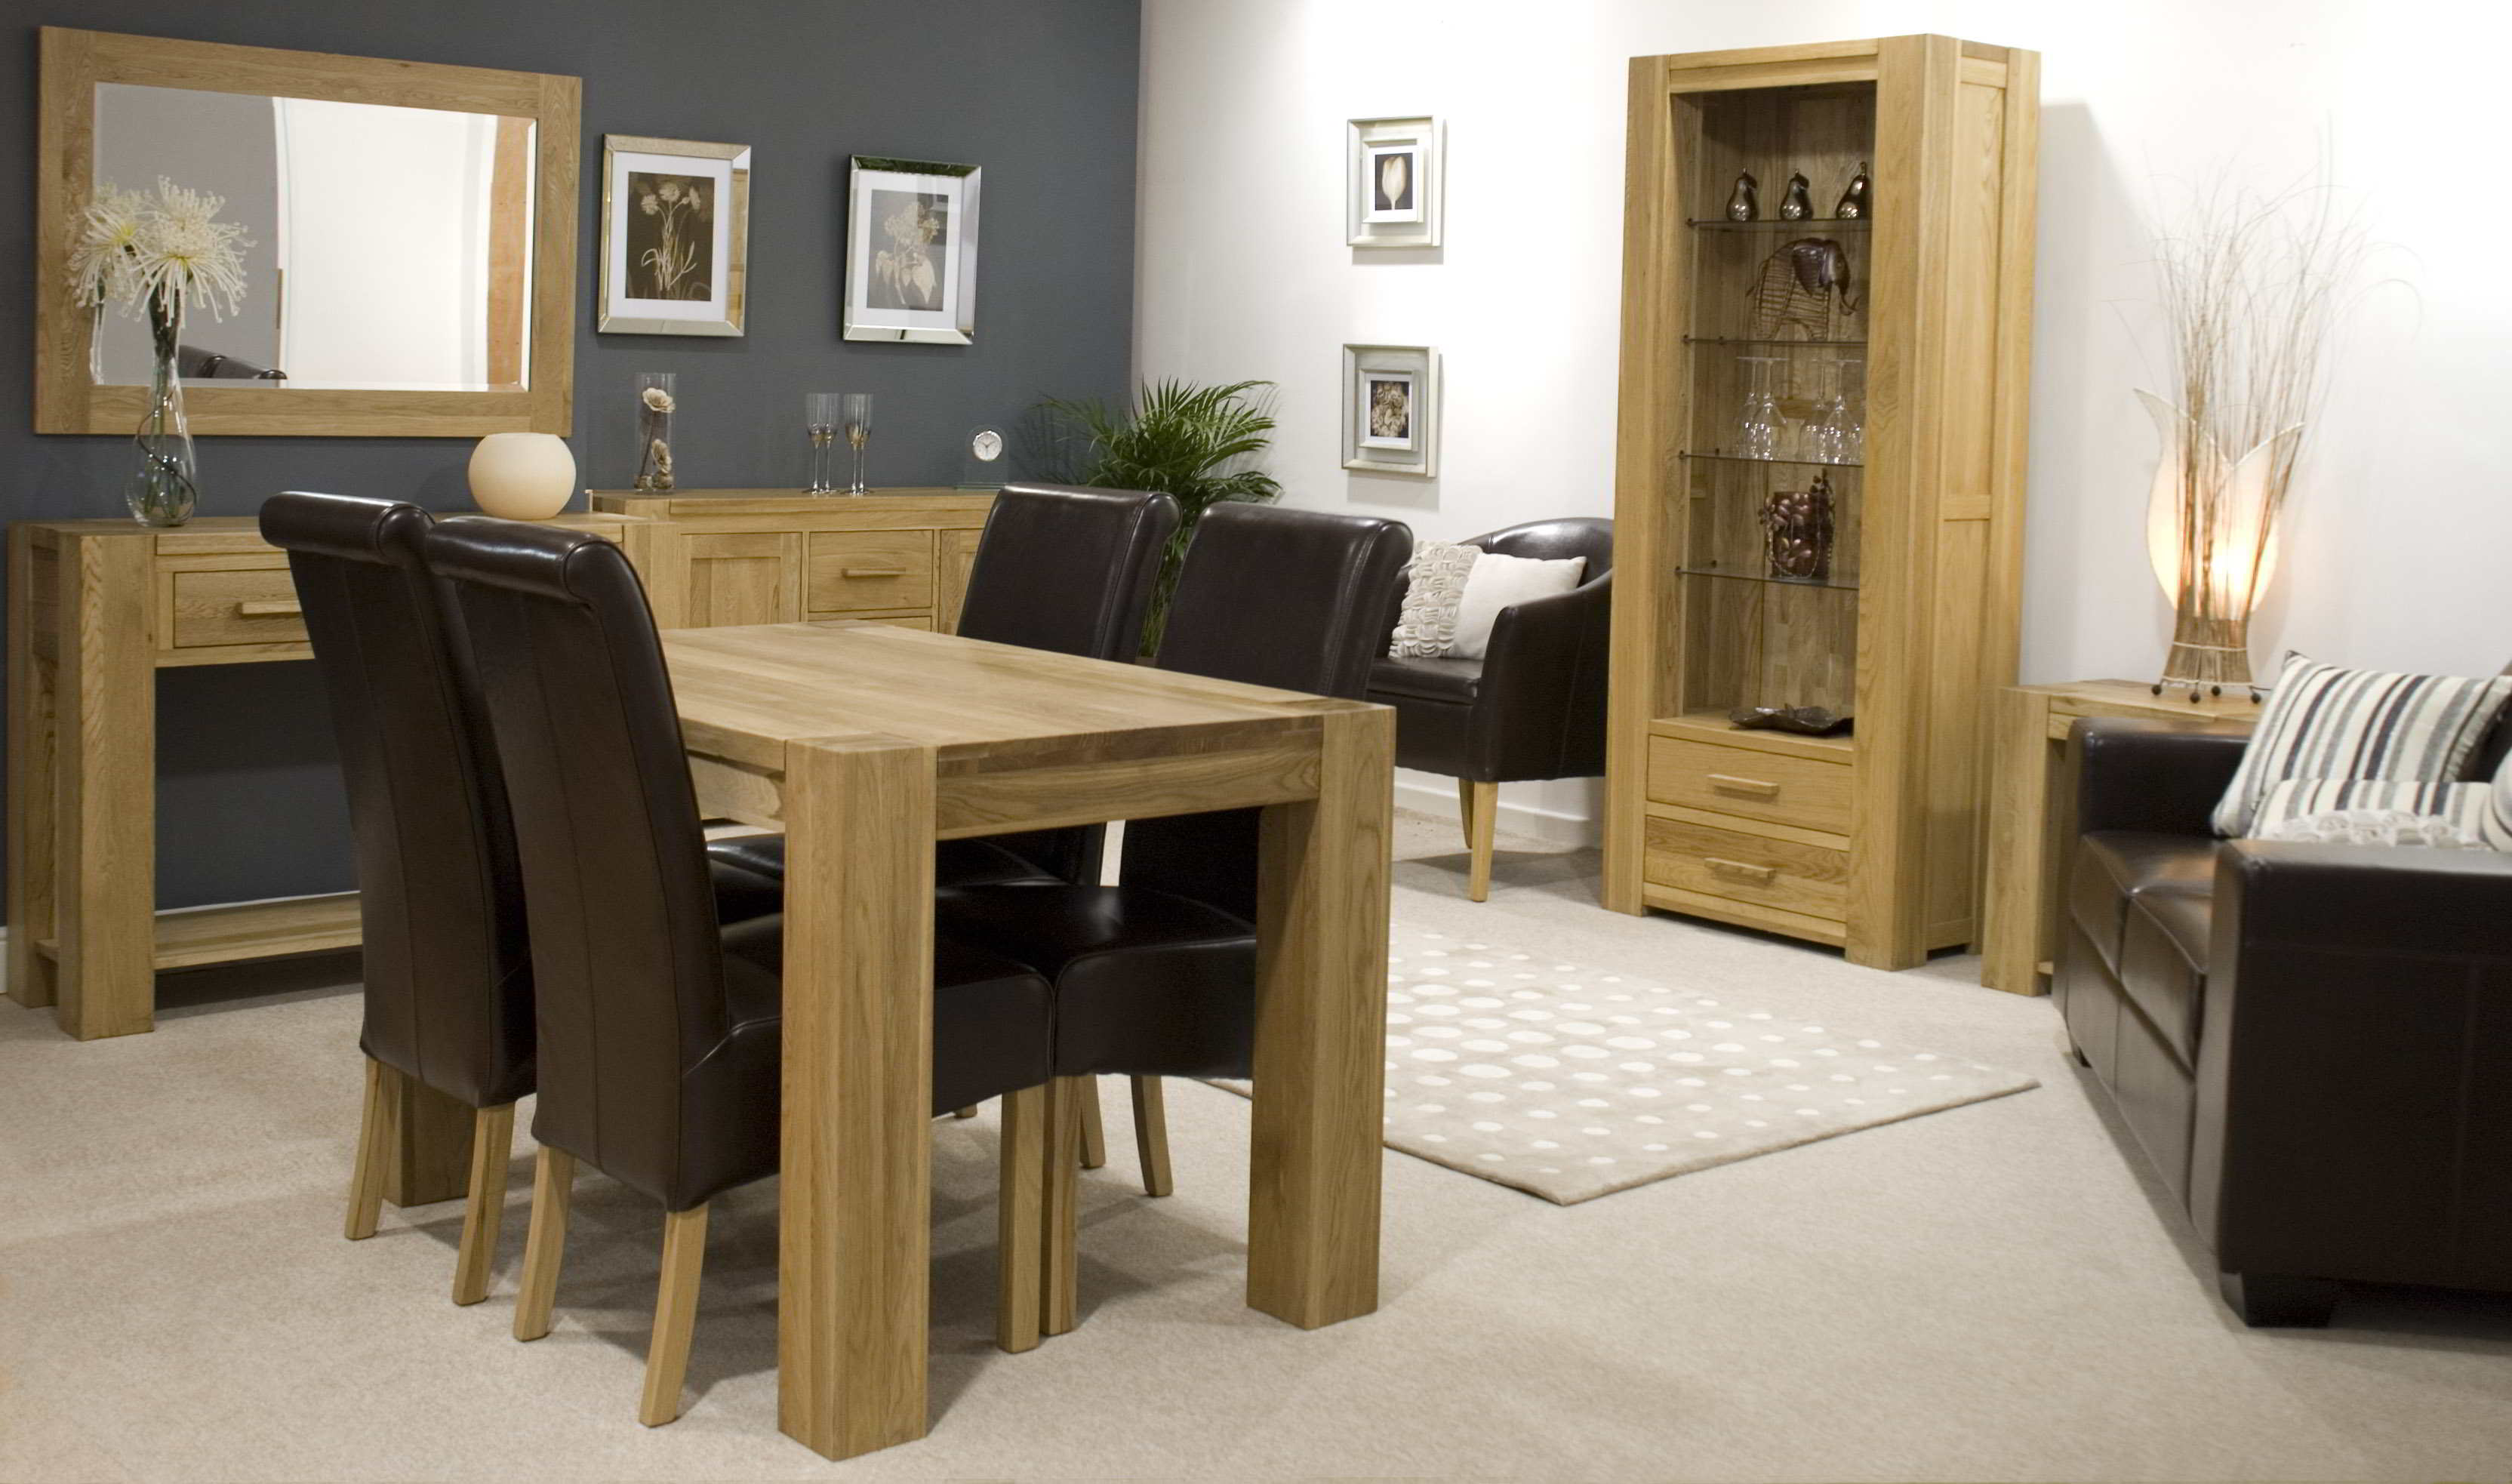 Matching Chairs For Living Room Padova Solid Oak Furniture Small Dining Table And Four Red Leather